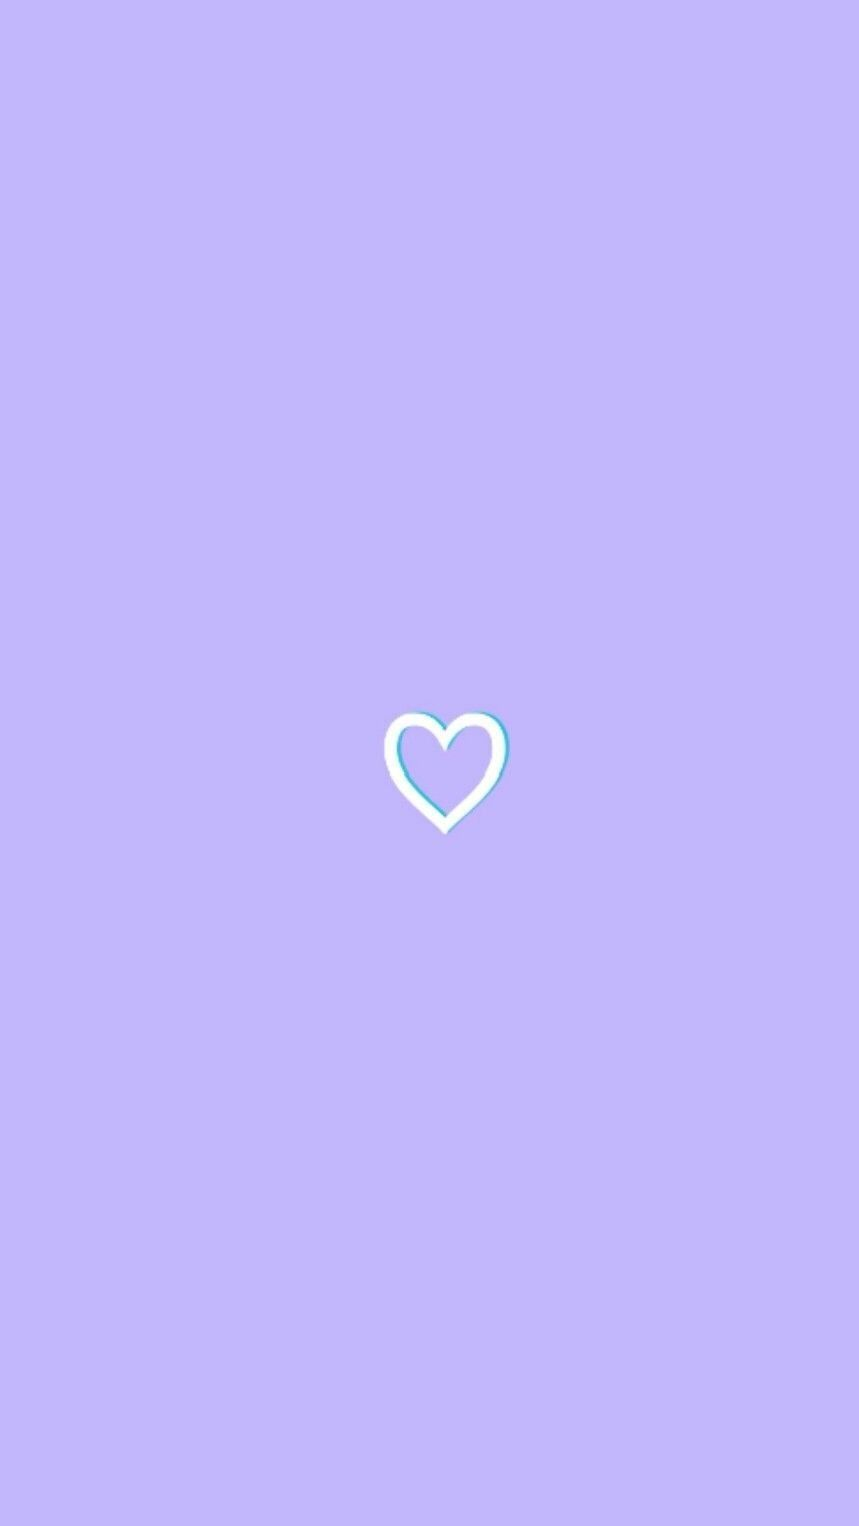 Aesthetic Pastel Purple Wallpaper Iphone